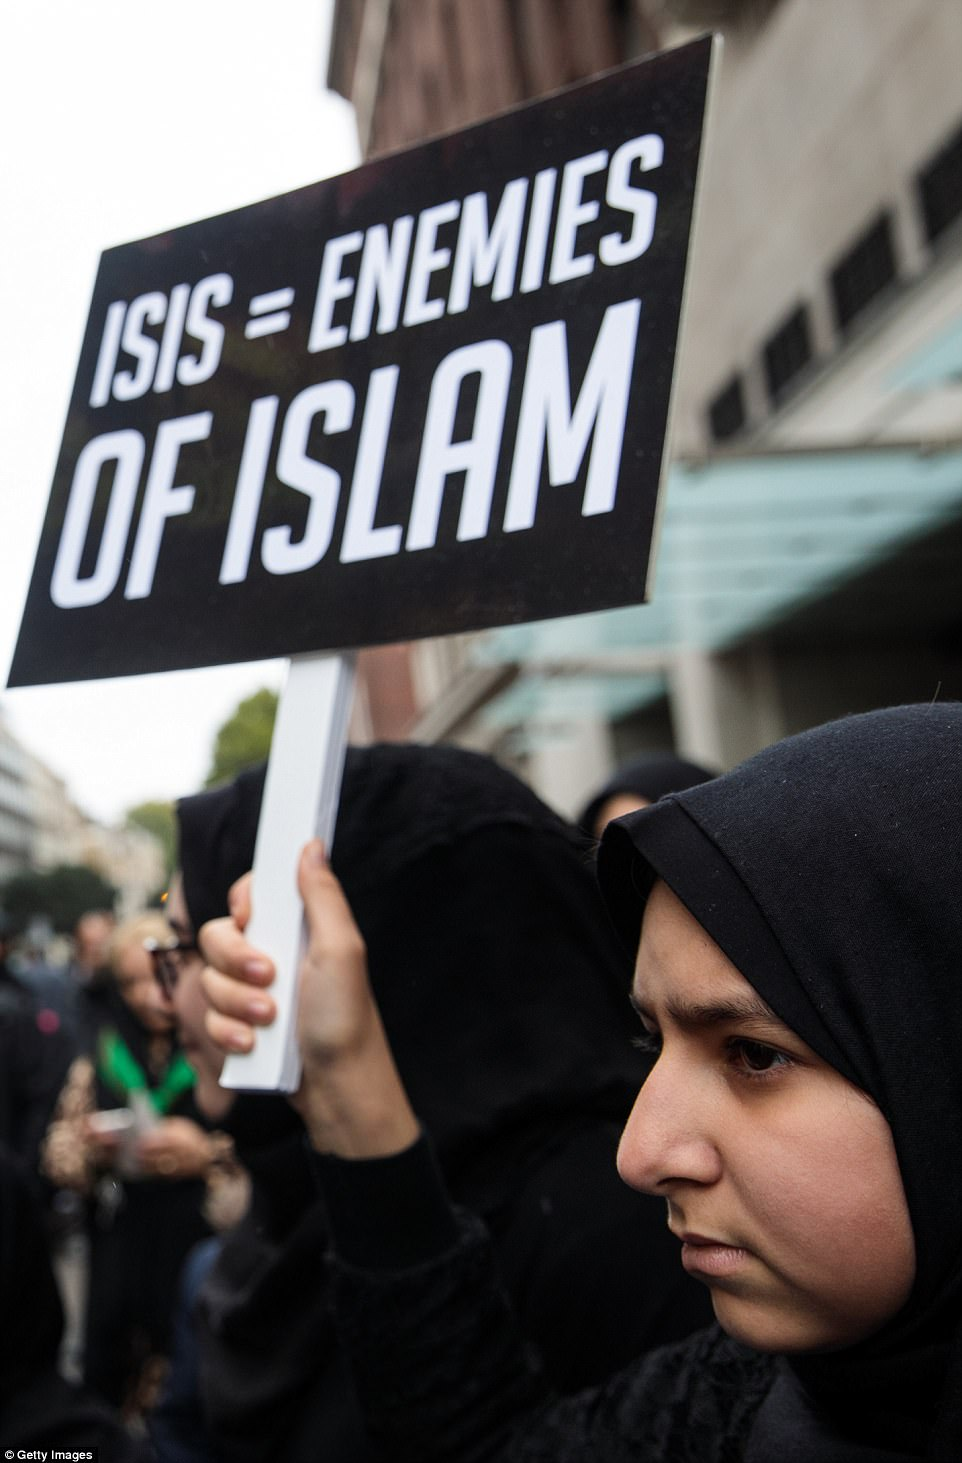 Protesters waved placards condemning acts of terrorism carried out by Islamic State as Muslims marked Ashura in London